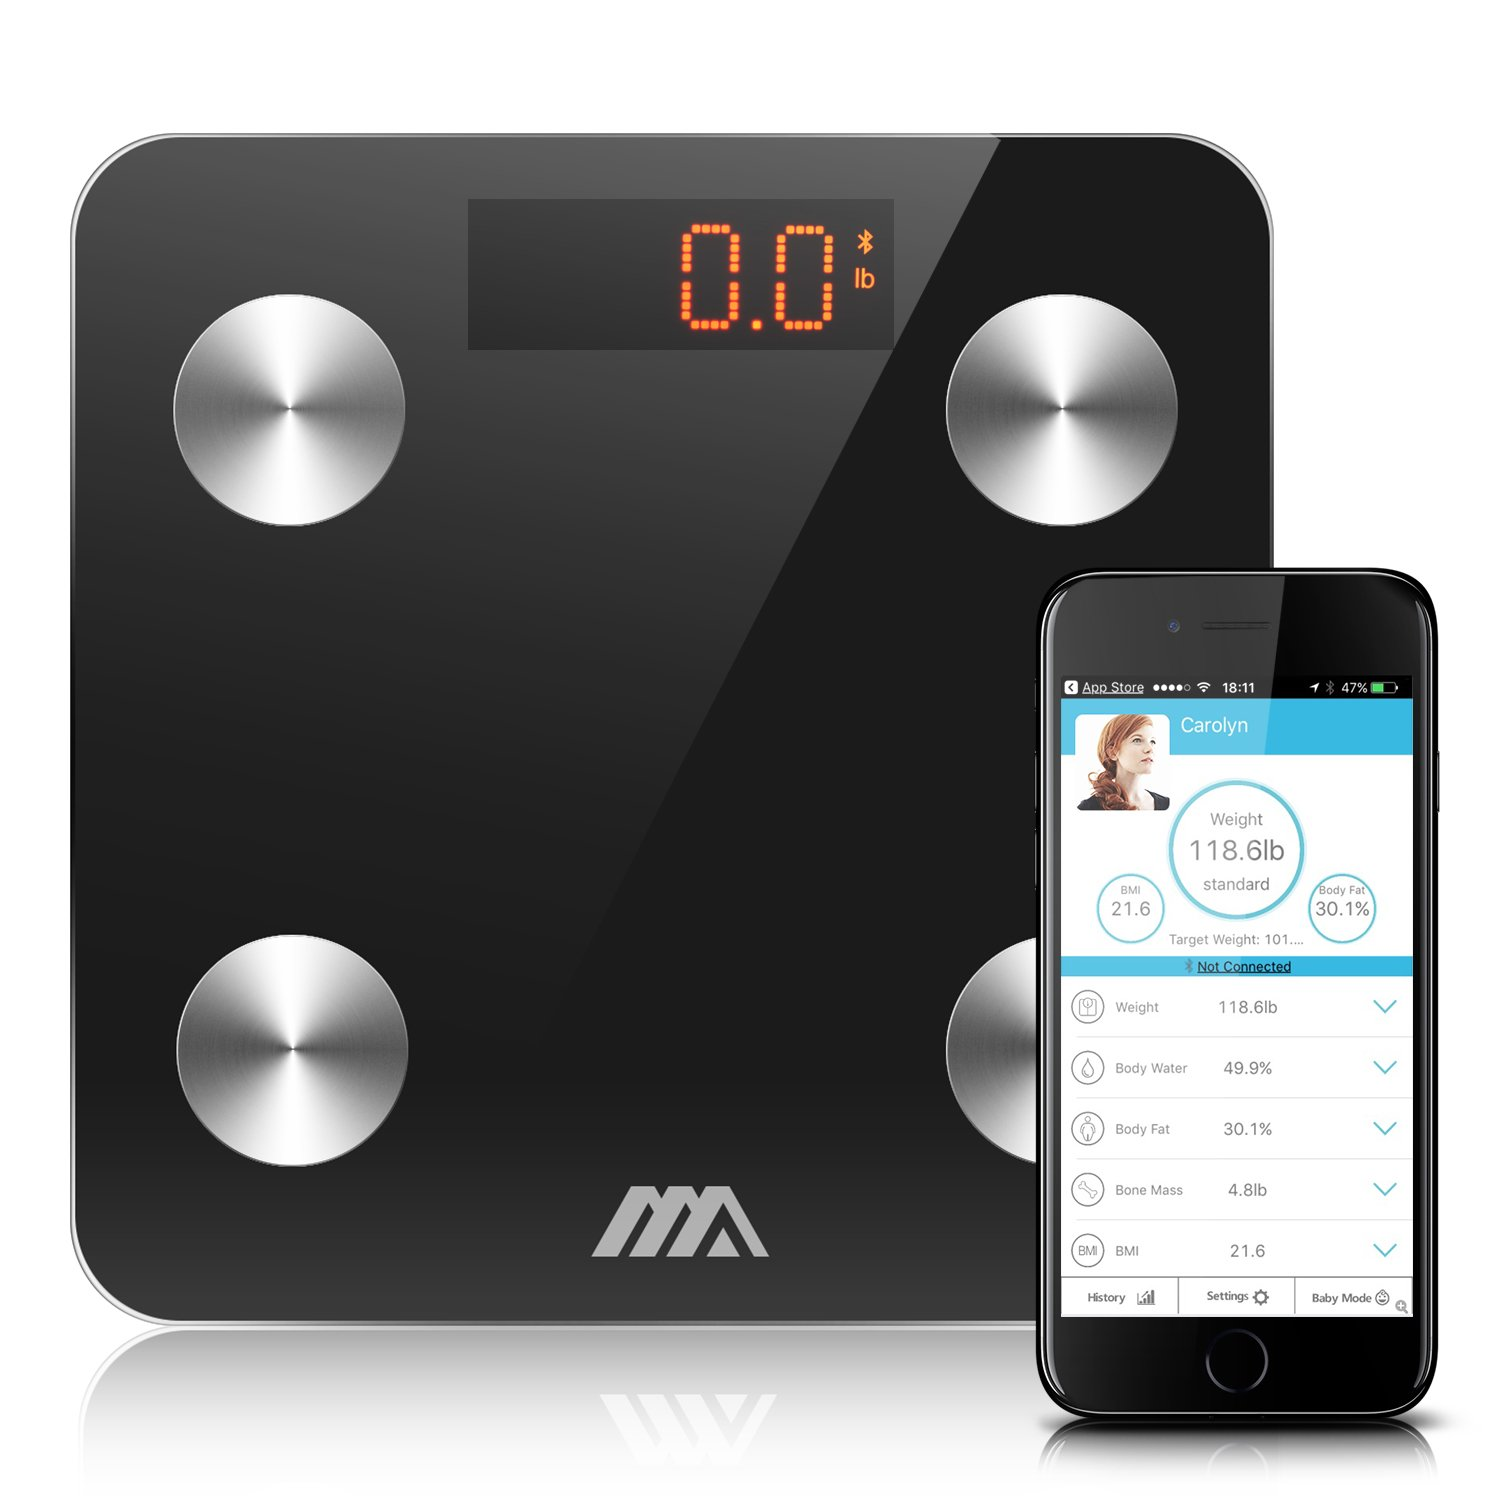 Adoric Bluetooth Smart Body Fat Scale - Body Composition Monitor with Large LCD Display, New FREE-APP Works with Android and IOS for Measuring Weight, Bone, Water, Muscle, Fat, BMI, BMR